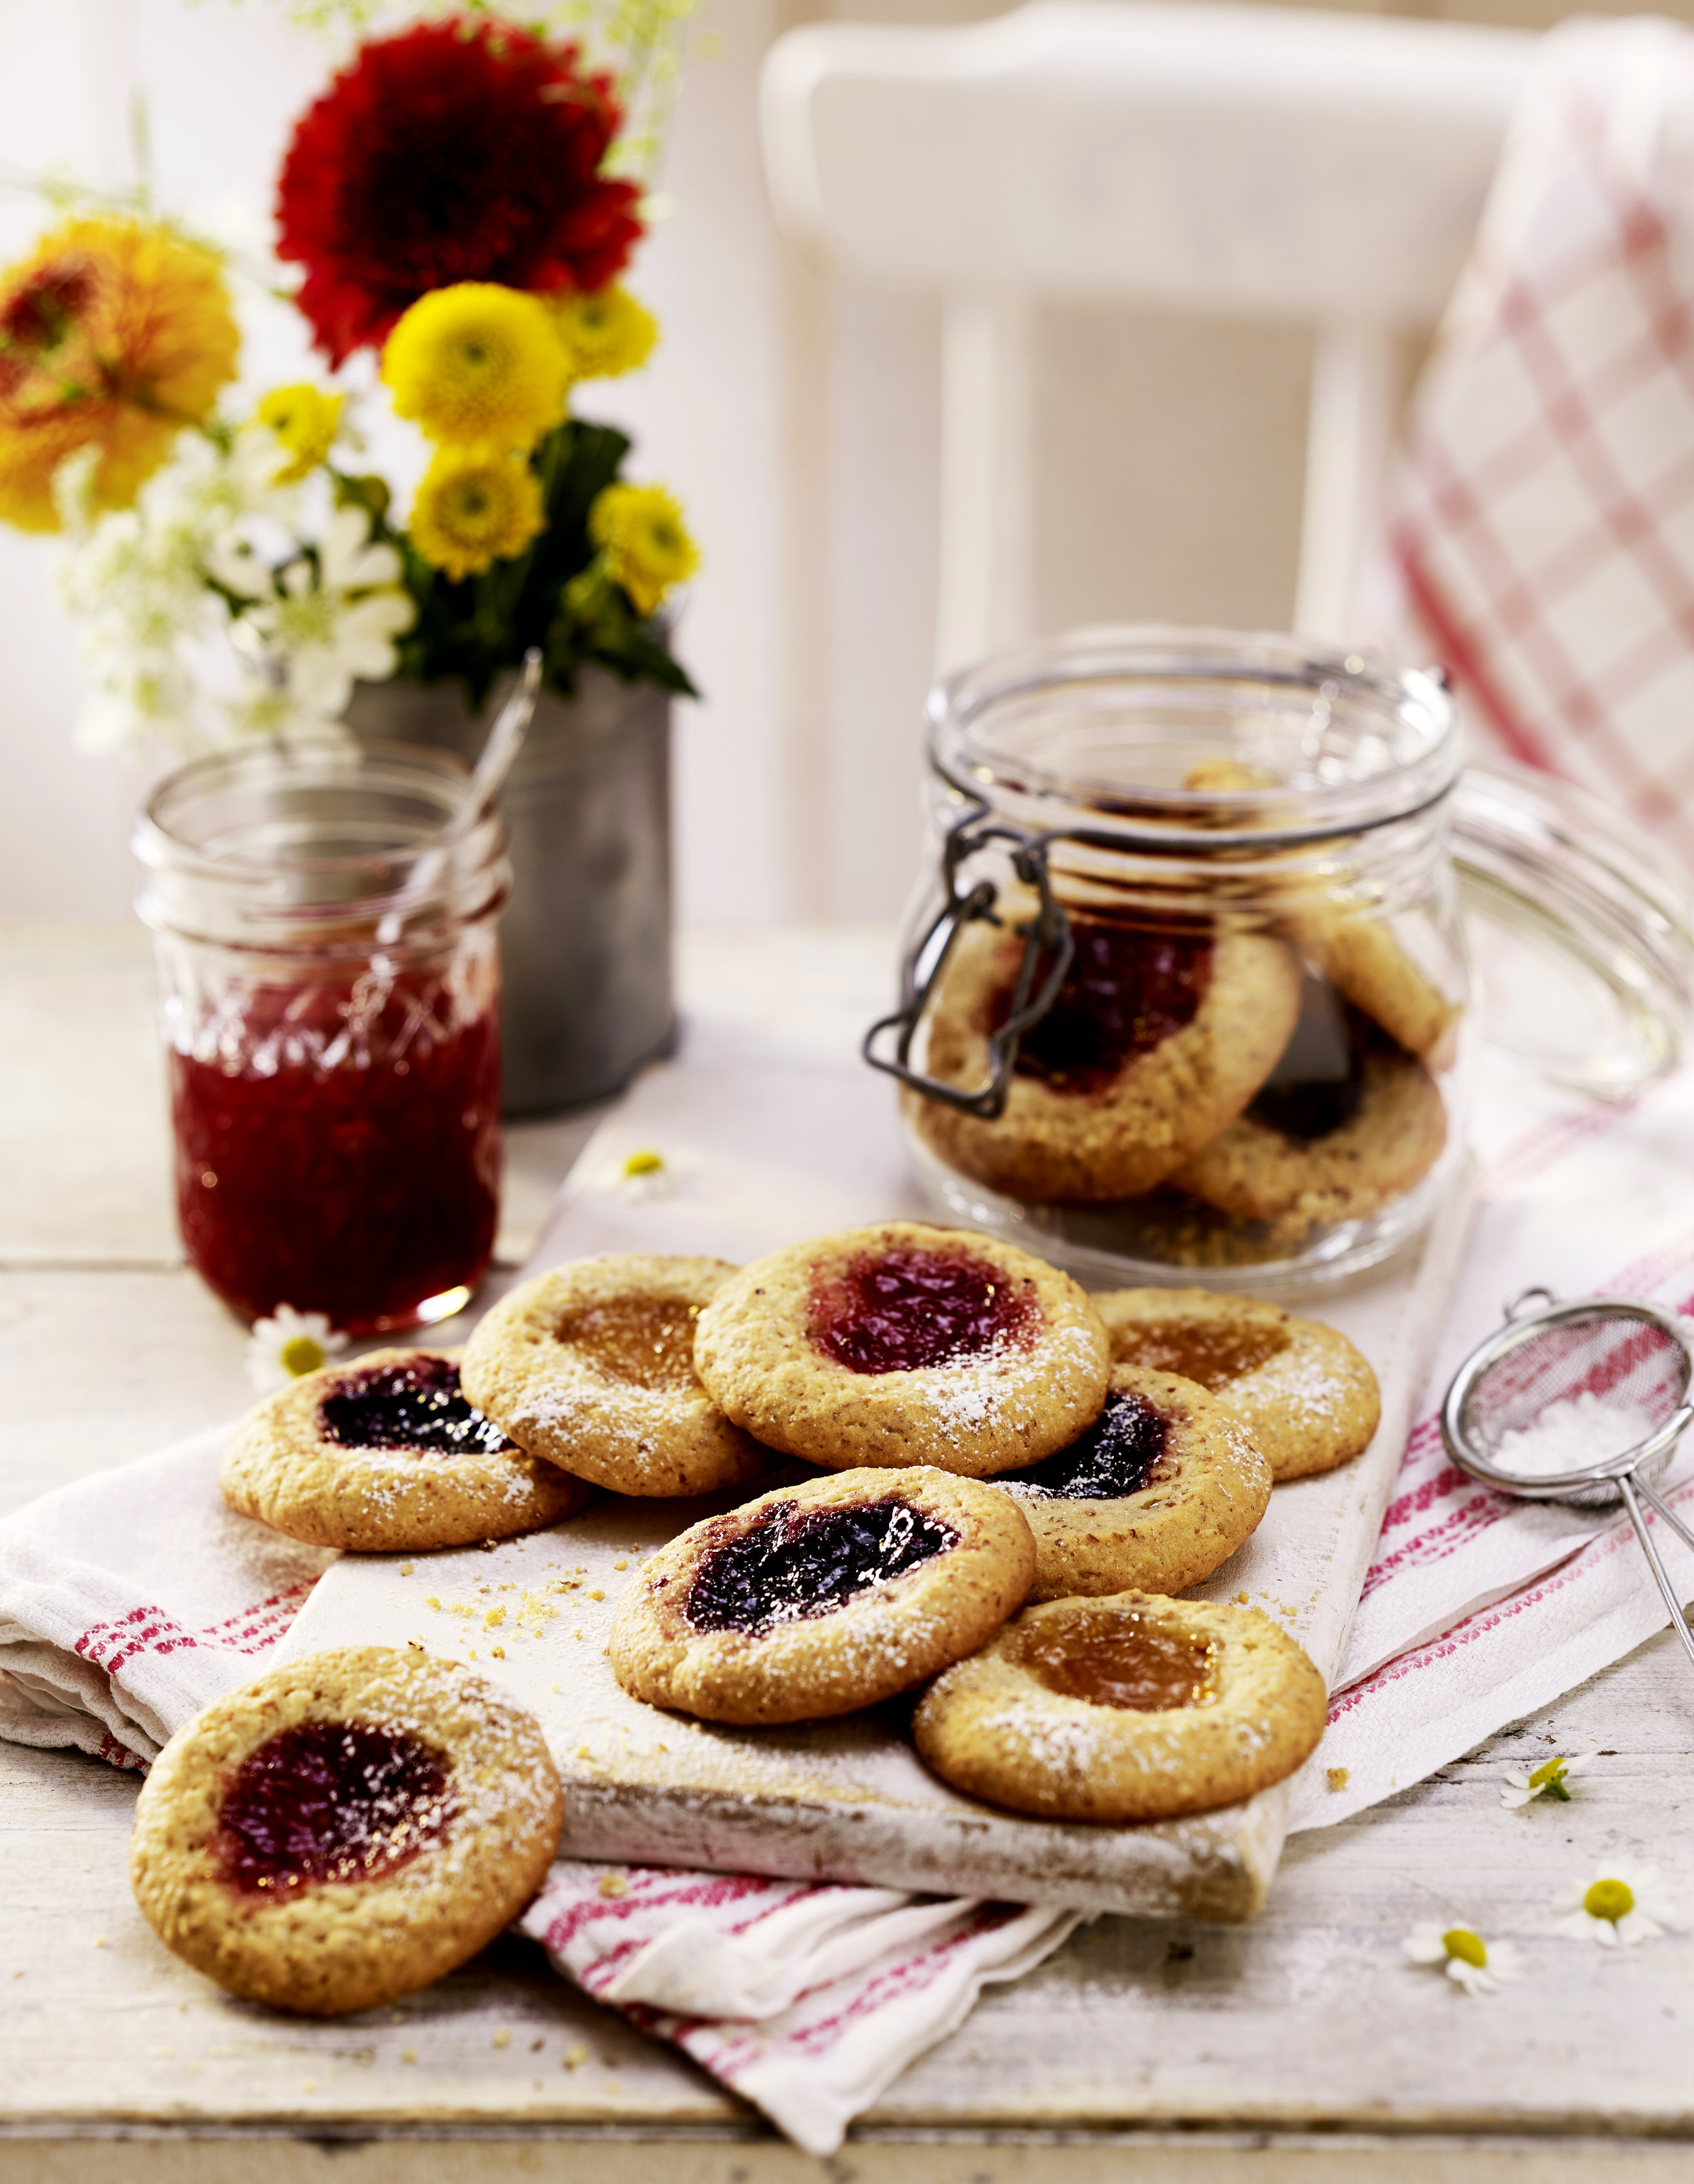 Golden cookies filled with sweet blackcurrant, strawberry and apricot jam for a tasty treat.